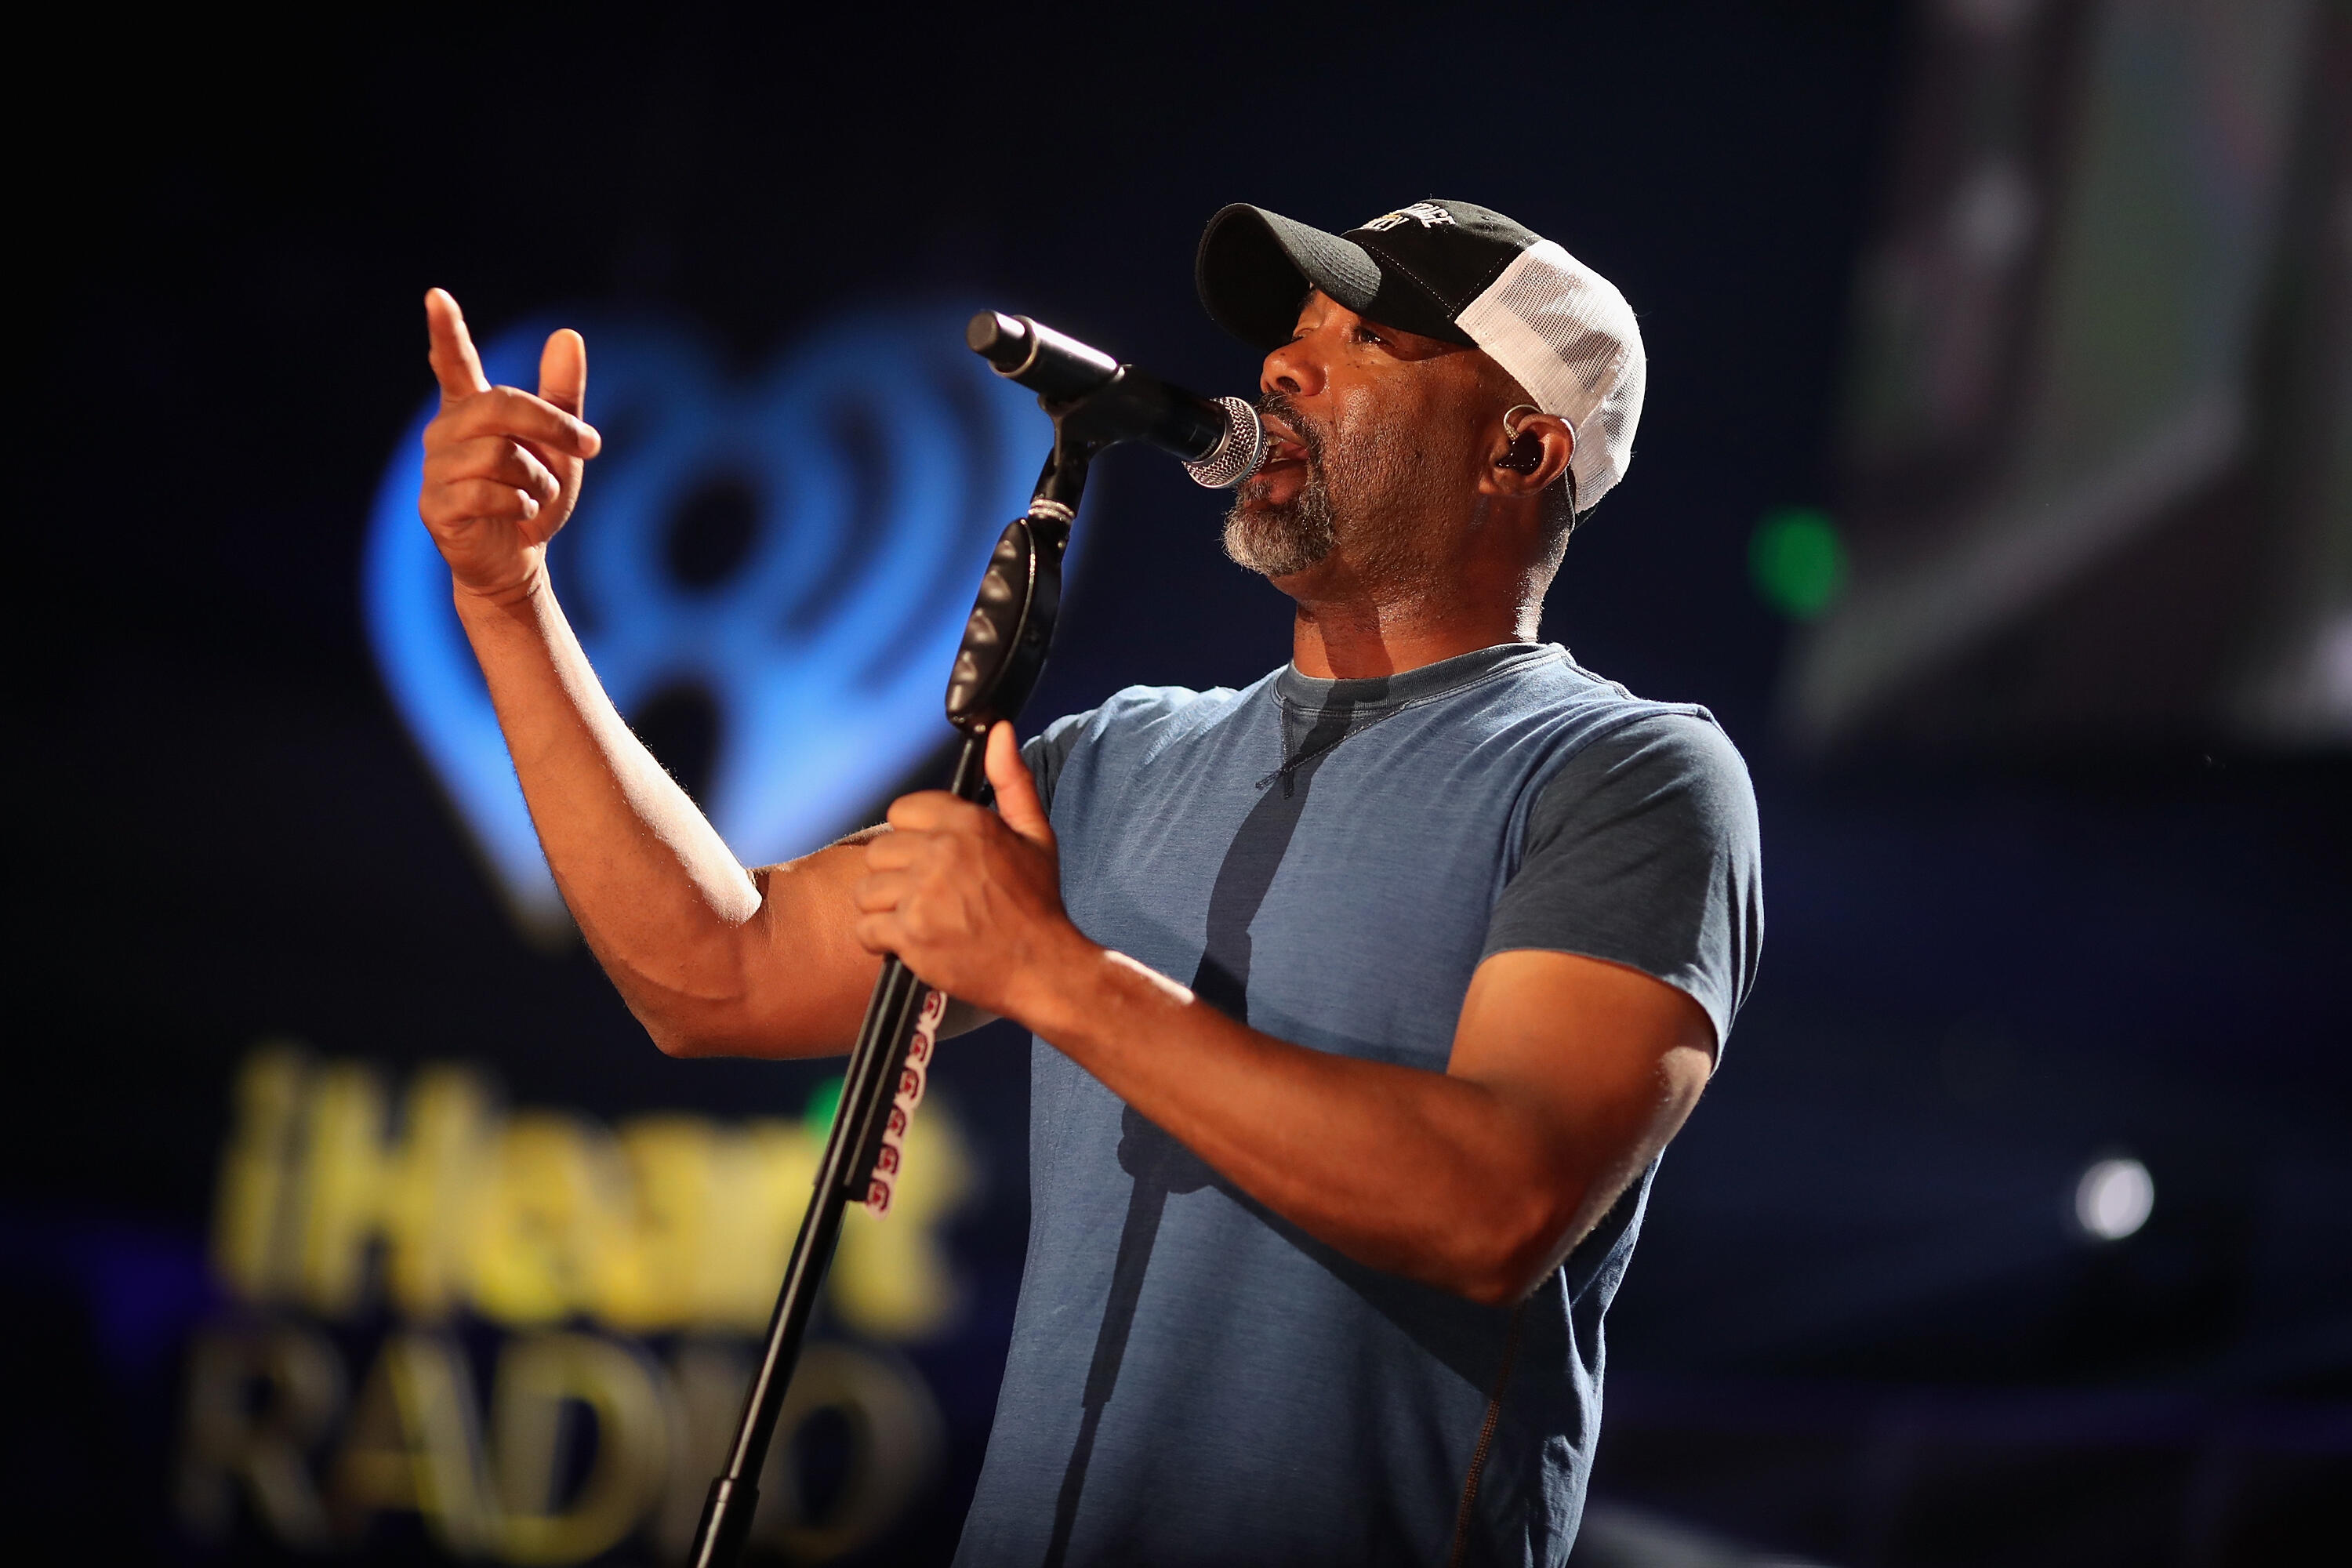 AUSTIN, TX - MAY 06: Singer Darius Rucker performs onstage during the 2017 iHeartCountry Festival, A Music Experience by AT&T at The Frank Erwin Center on May 6, 2017 in Austin, Texas. (Photo by Christopher Polk/Getty Images for iHeartMedia )